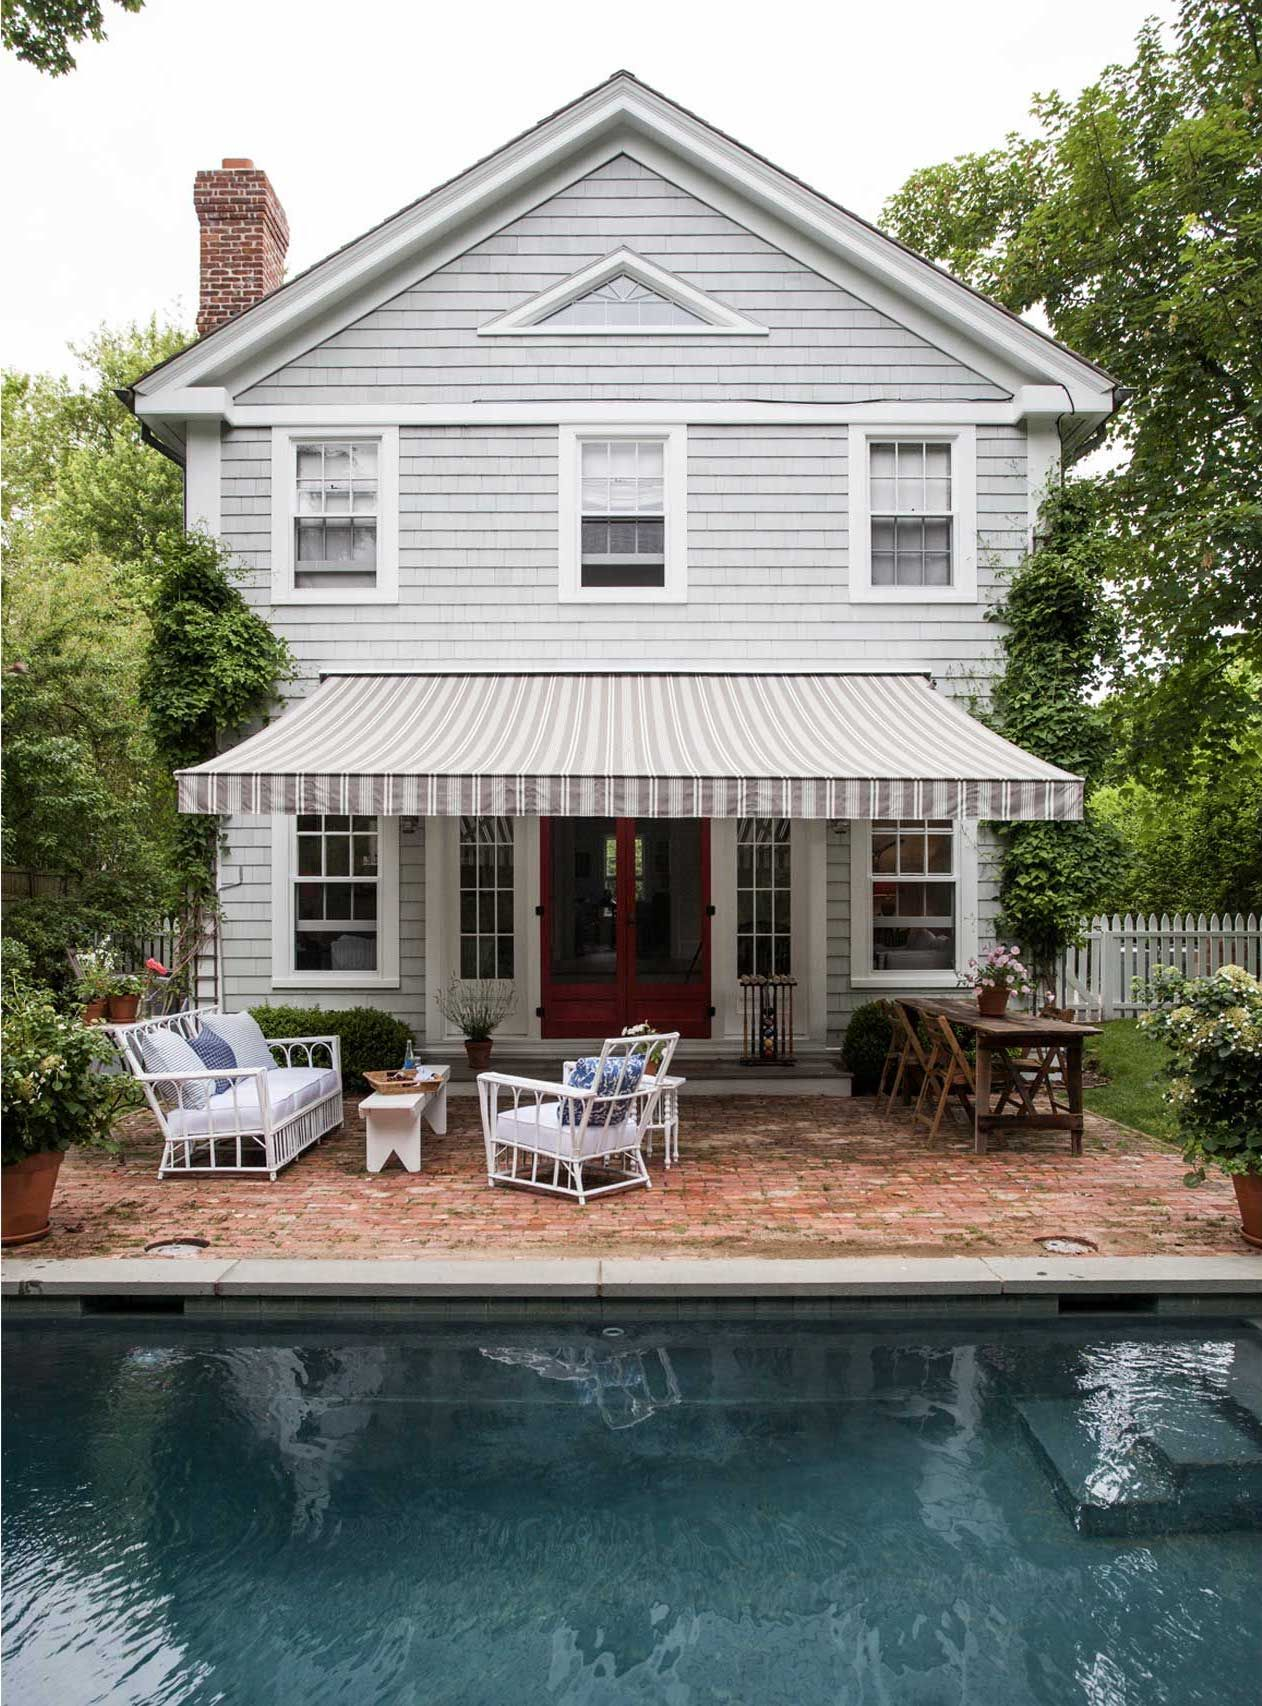 71 Stunning Exterior Home Colors 2020 Vibrant House Color Schemes